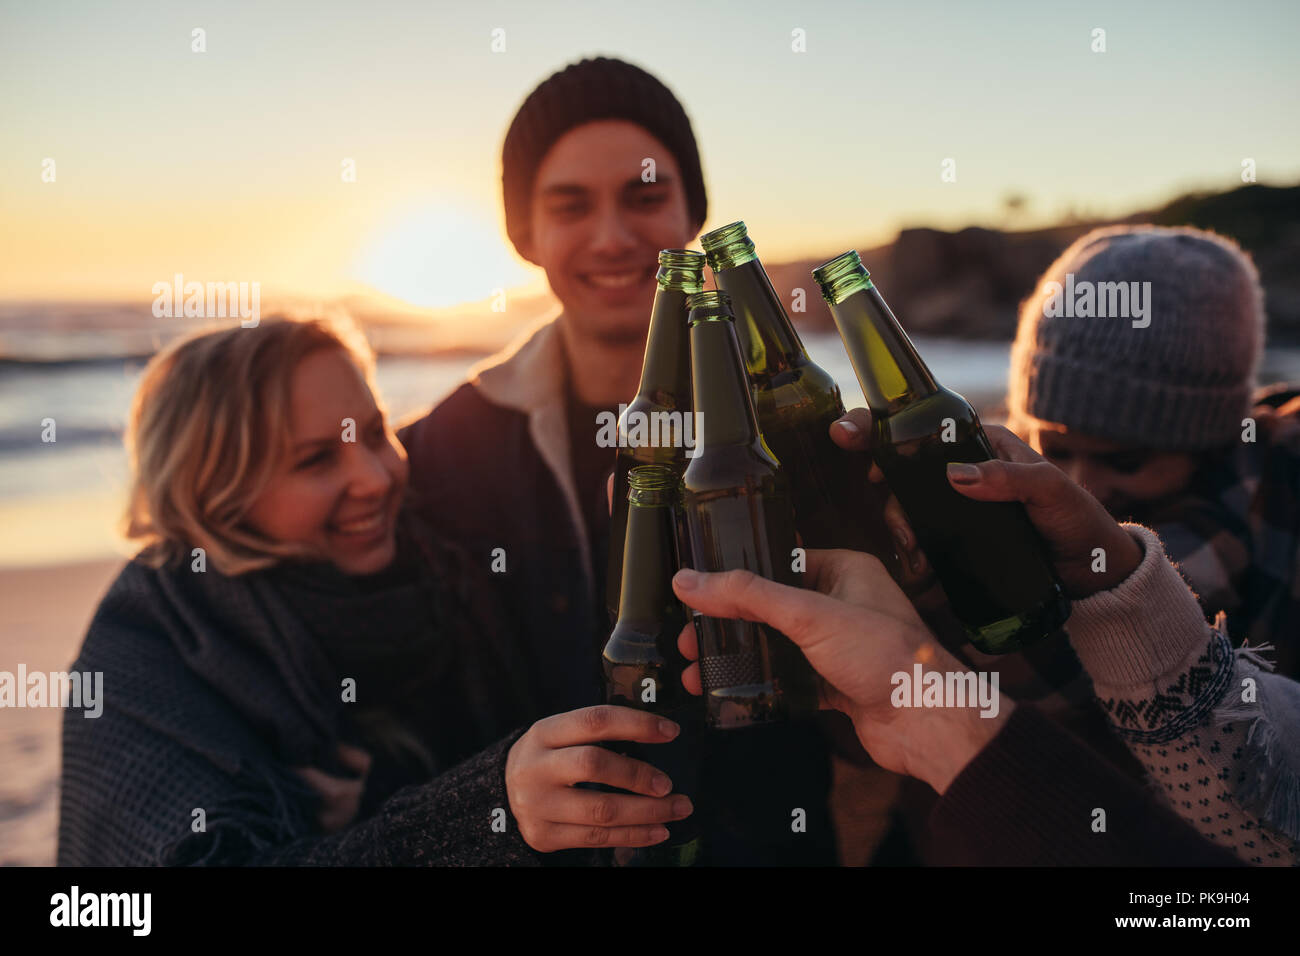 Young people toasting with beer bottles on beach. Group of men and women having drinks together at sea shore during sunset. - Stock Image